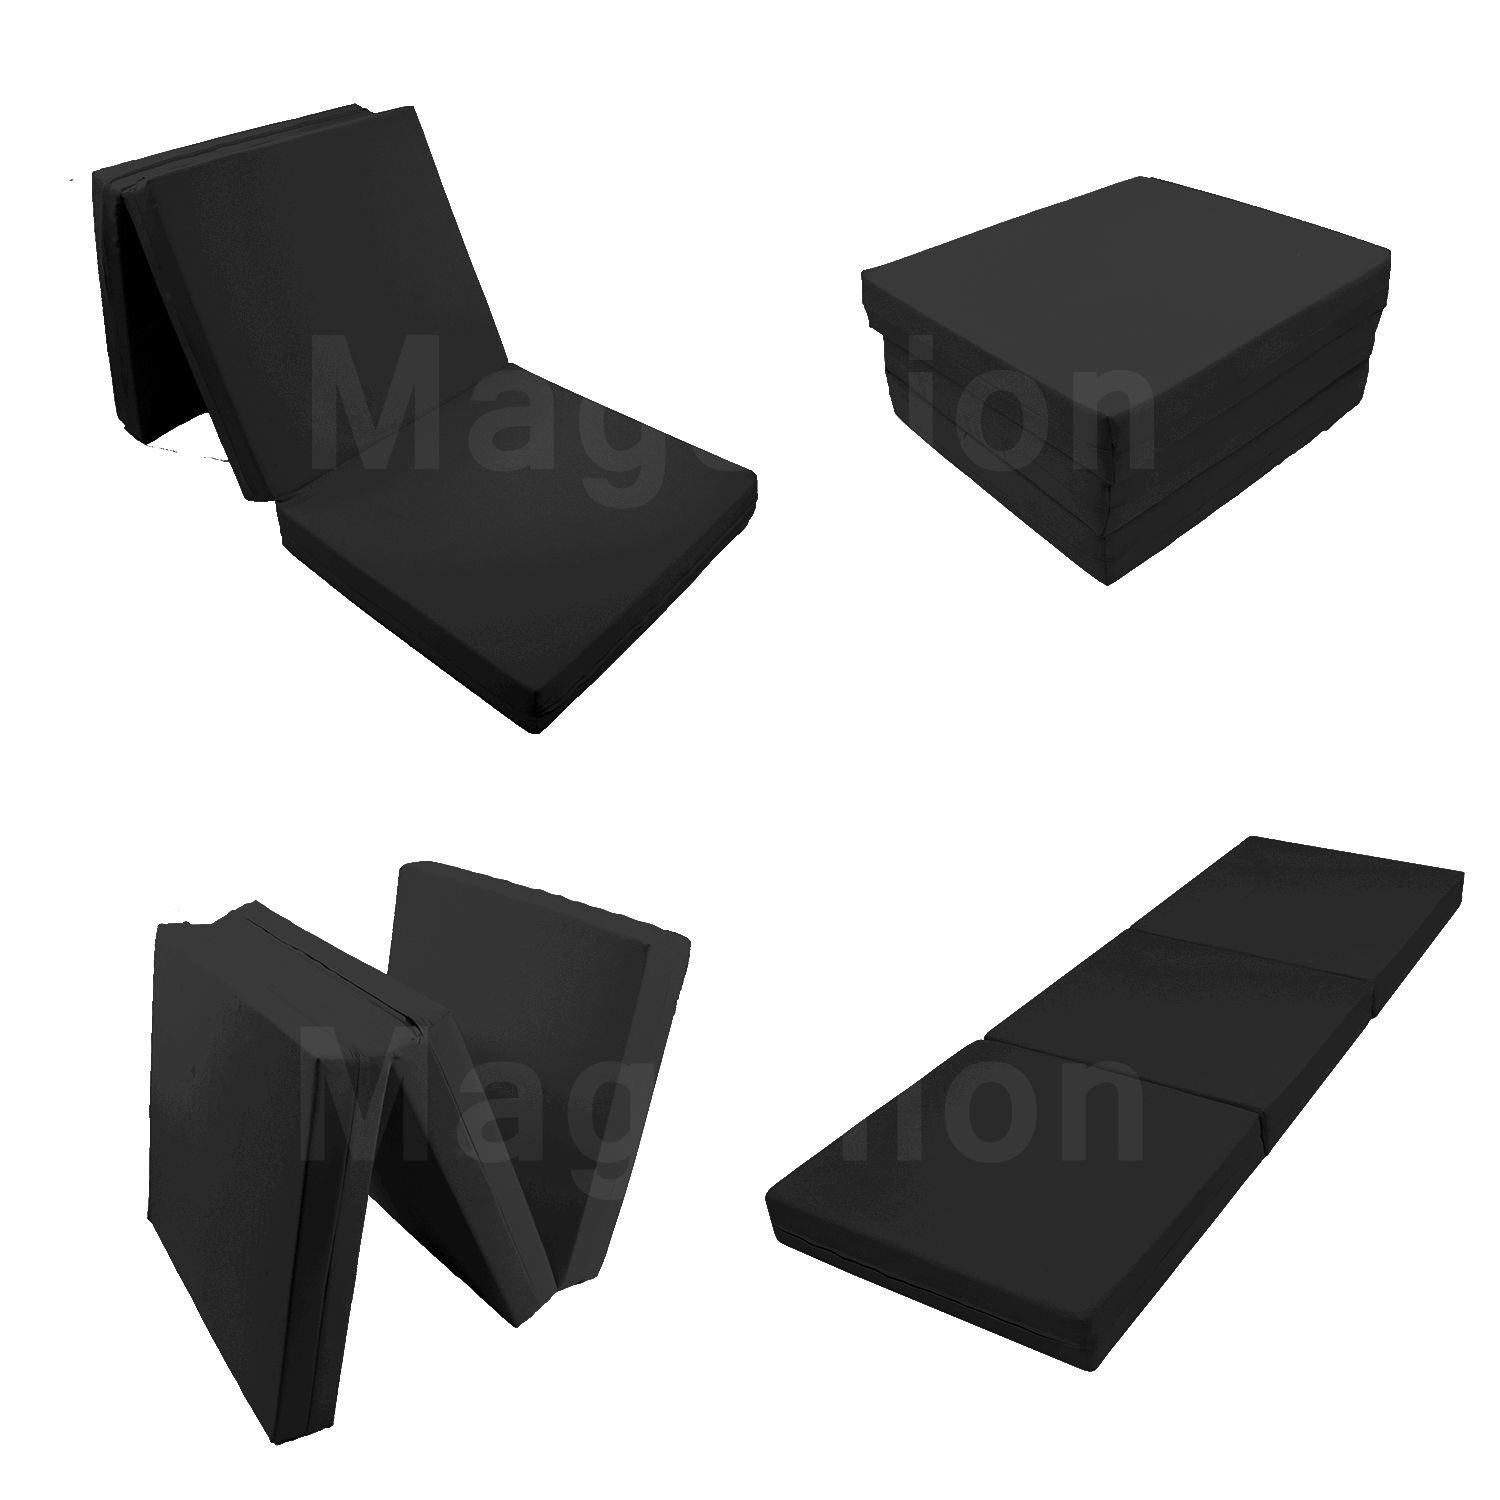 Foldable Mattresses Details About Floor Mattress Tatami Foam Mat Foam Bed Trifold Folding Mattresses Black